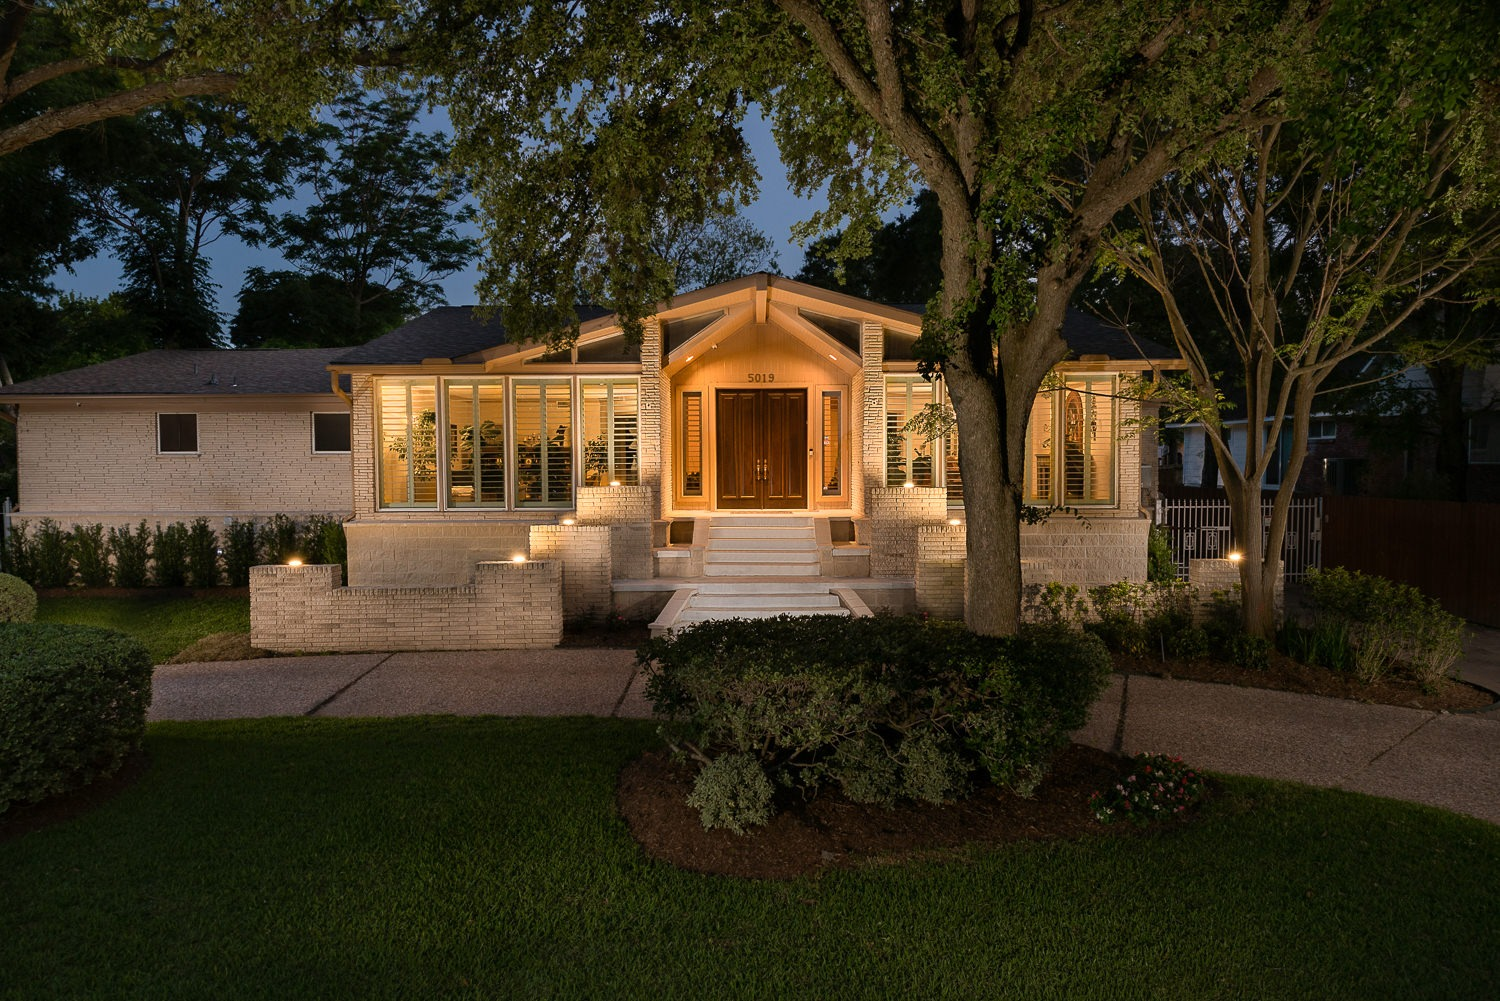 5019 South Braeswood, P3 Elevation, Low Lift, Front, Twilight,